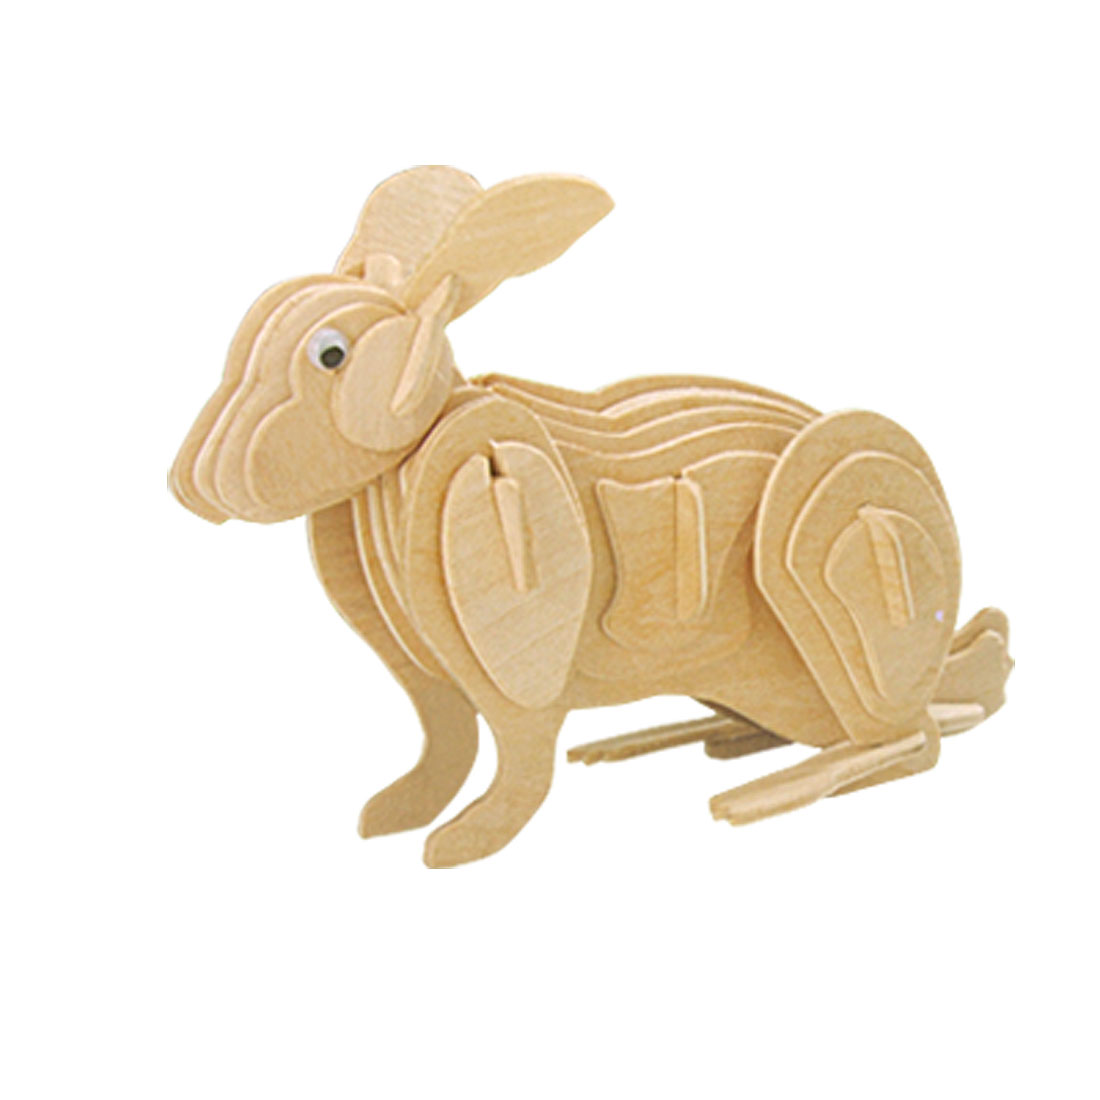 Woodcraft Construction Tender Rabbit Model DIY Puzzle Toy Kit